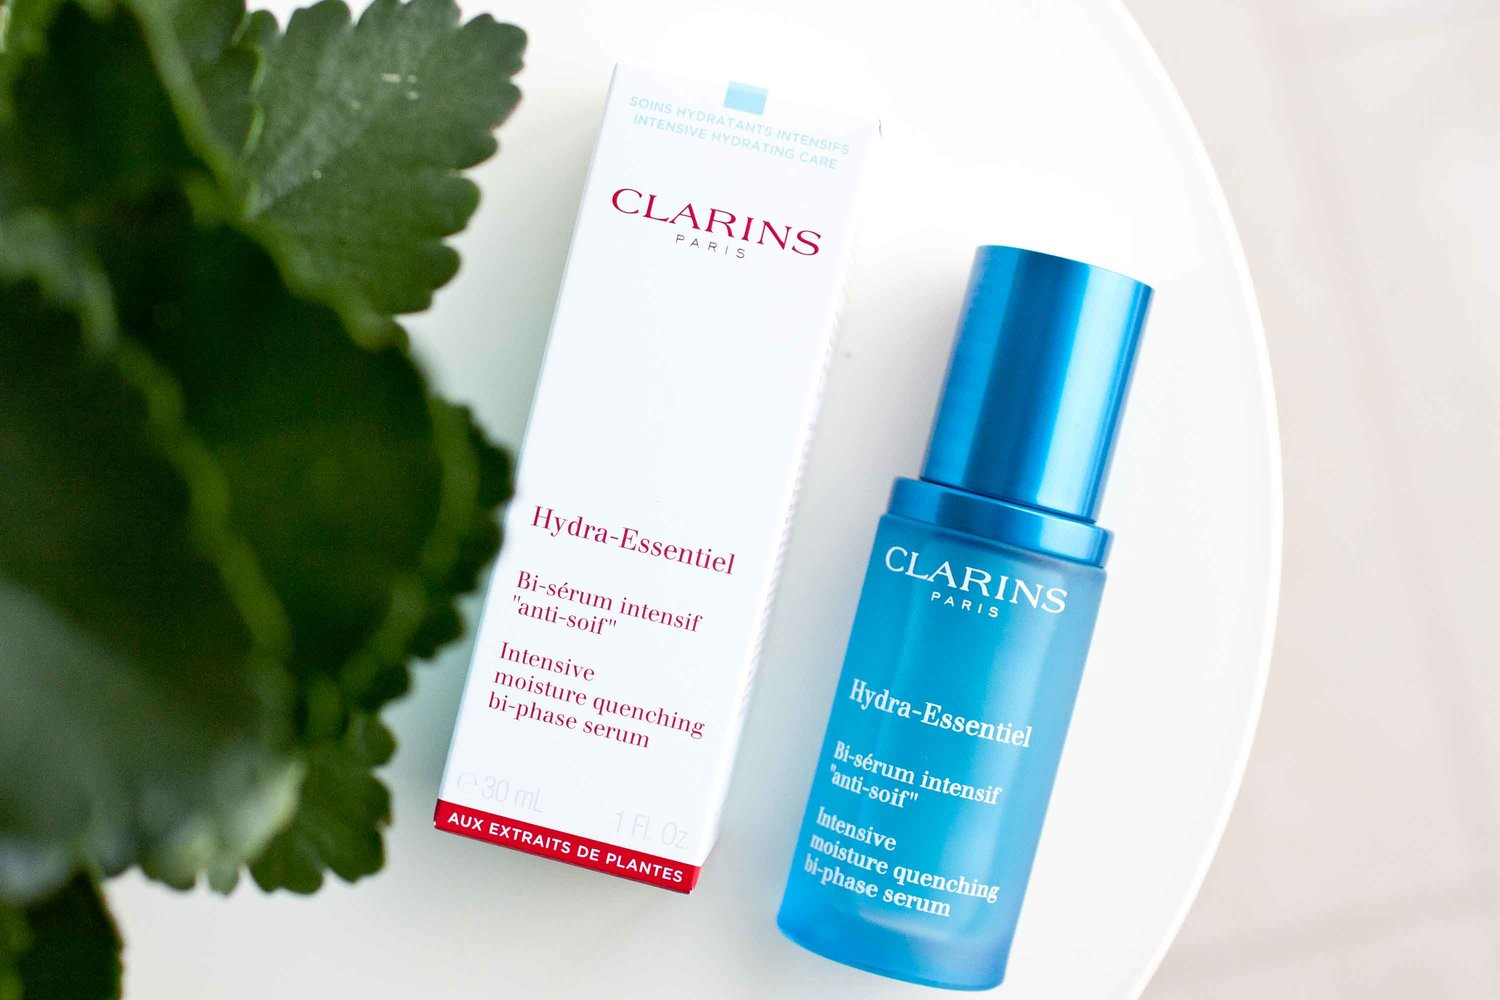 Ttsandra A Beauty And Style Blog Thirsty Skins New Best Friend Clarins Hydraquench Cream Gel Normal To Combination Skin 15ml